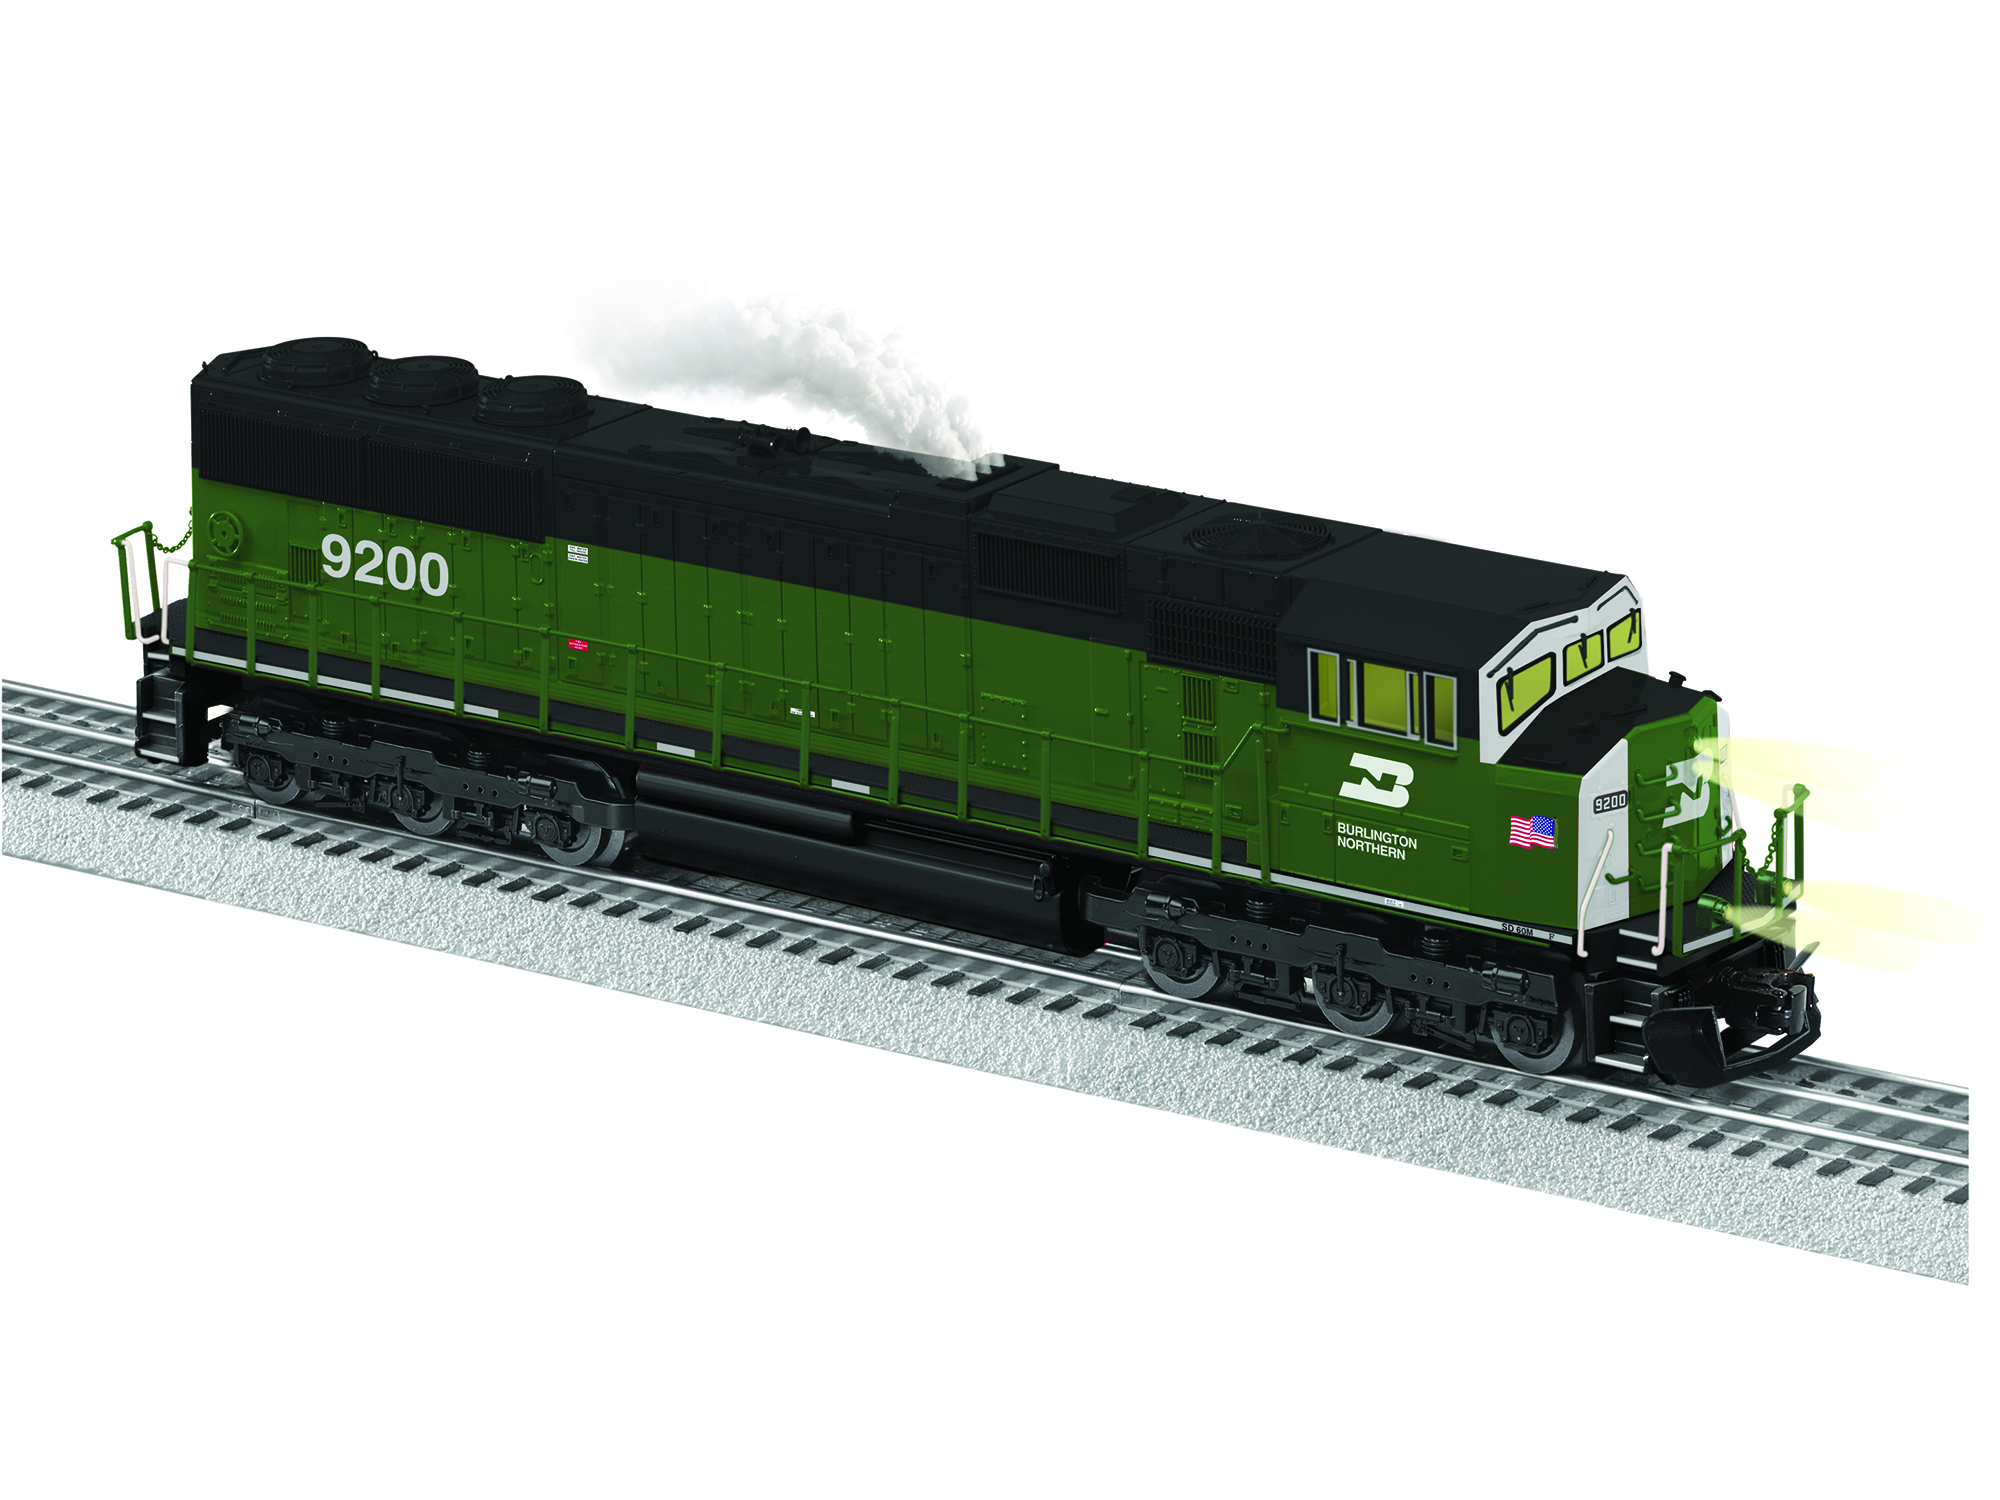 6-84401 BURLINGTON NORTHERN SD60M #9200